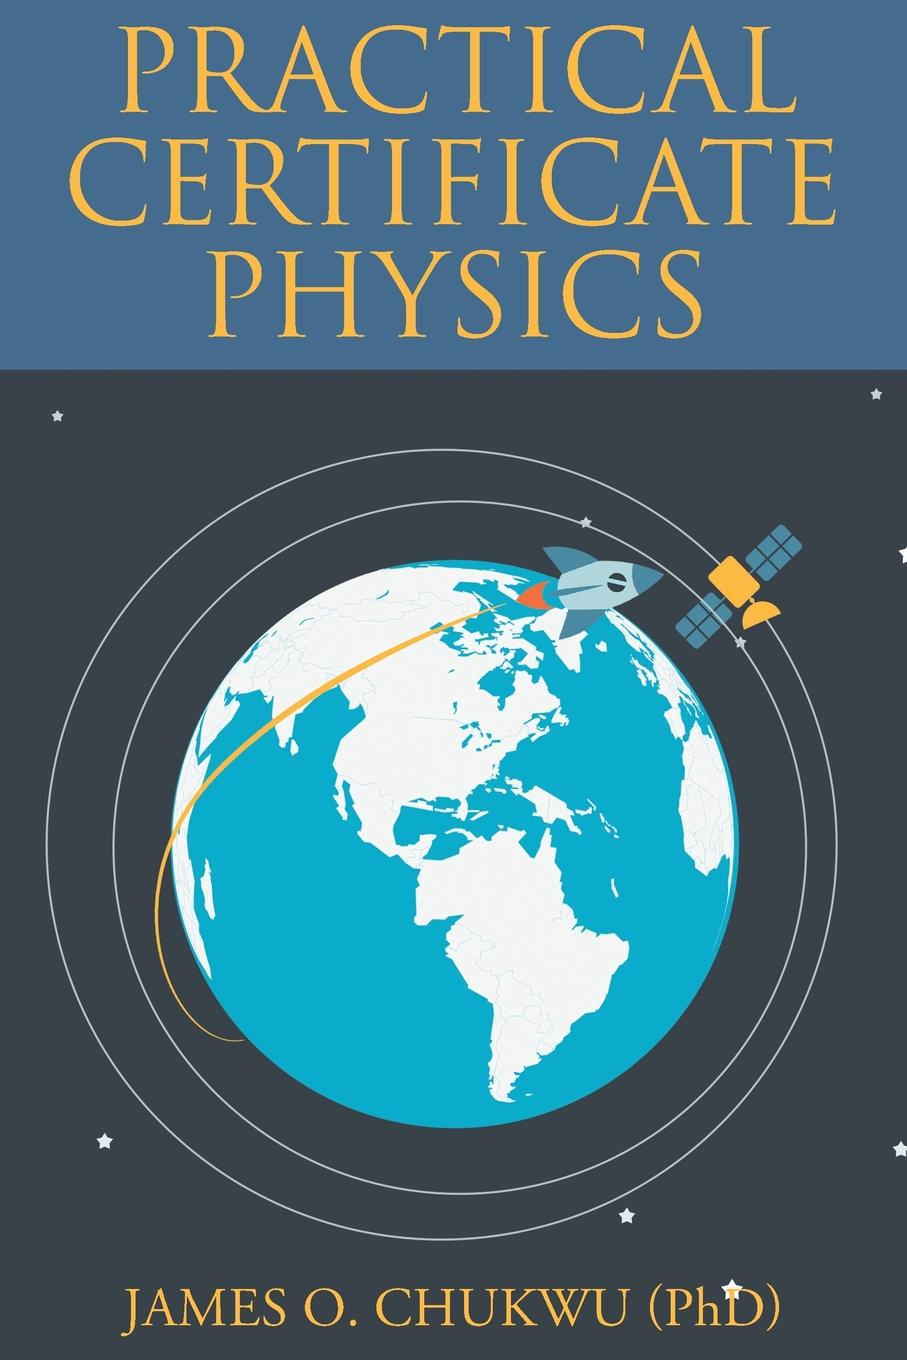 James O. Chukwu (PhD) Practical Certificate Physics mumper william norris a text book in physics for secondary schools